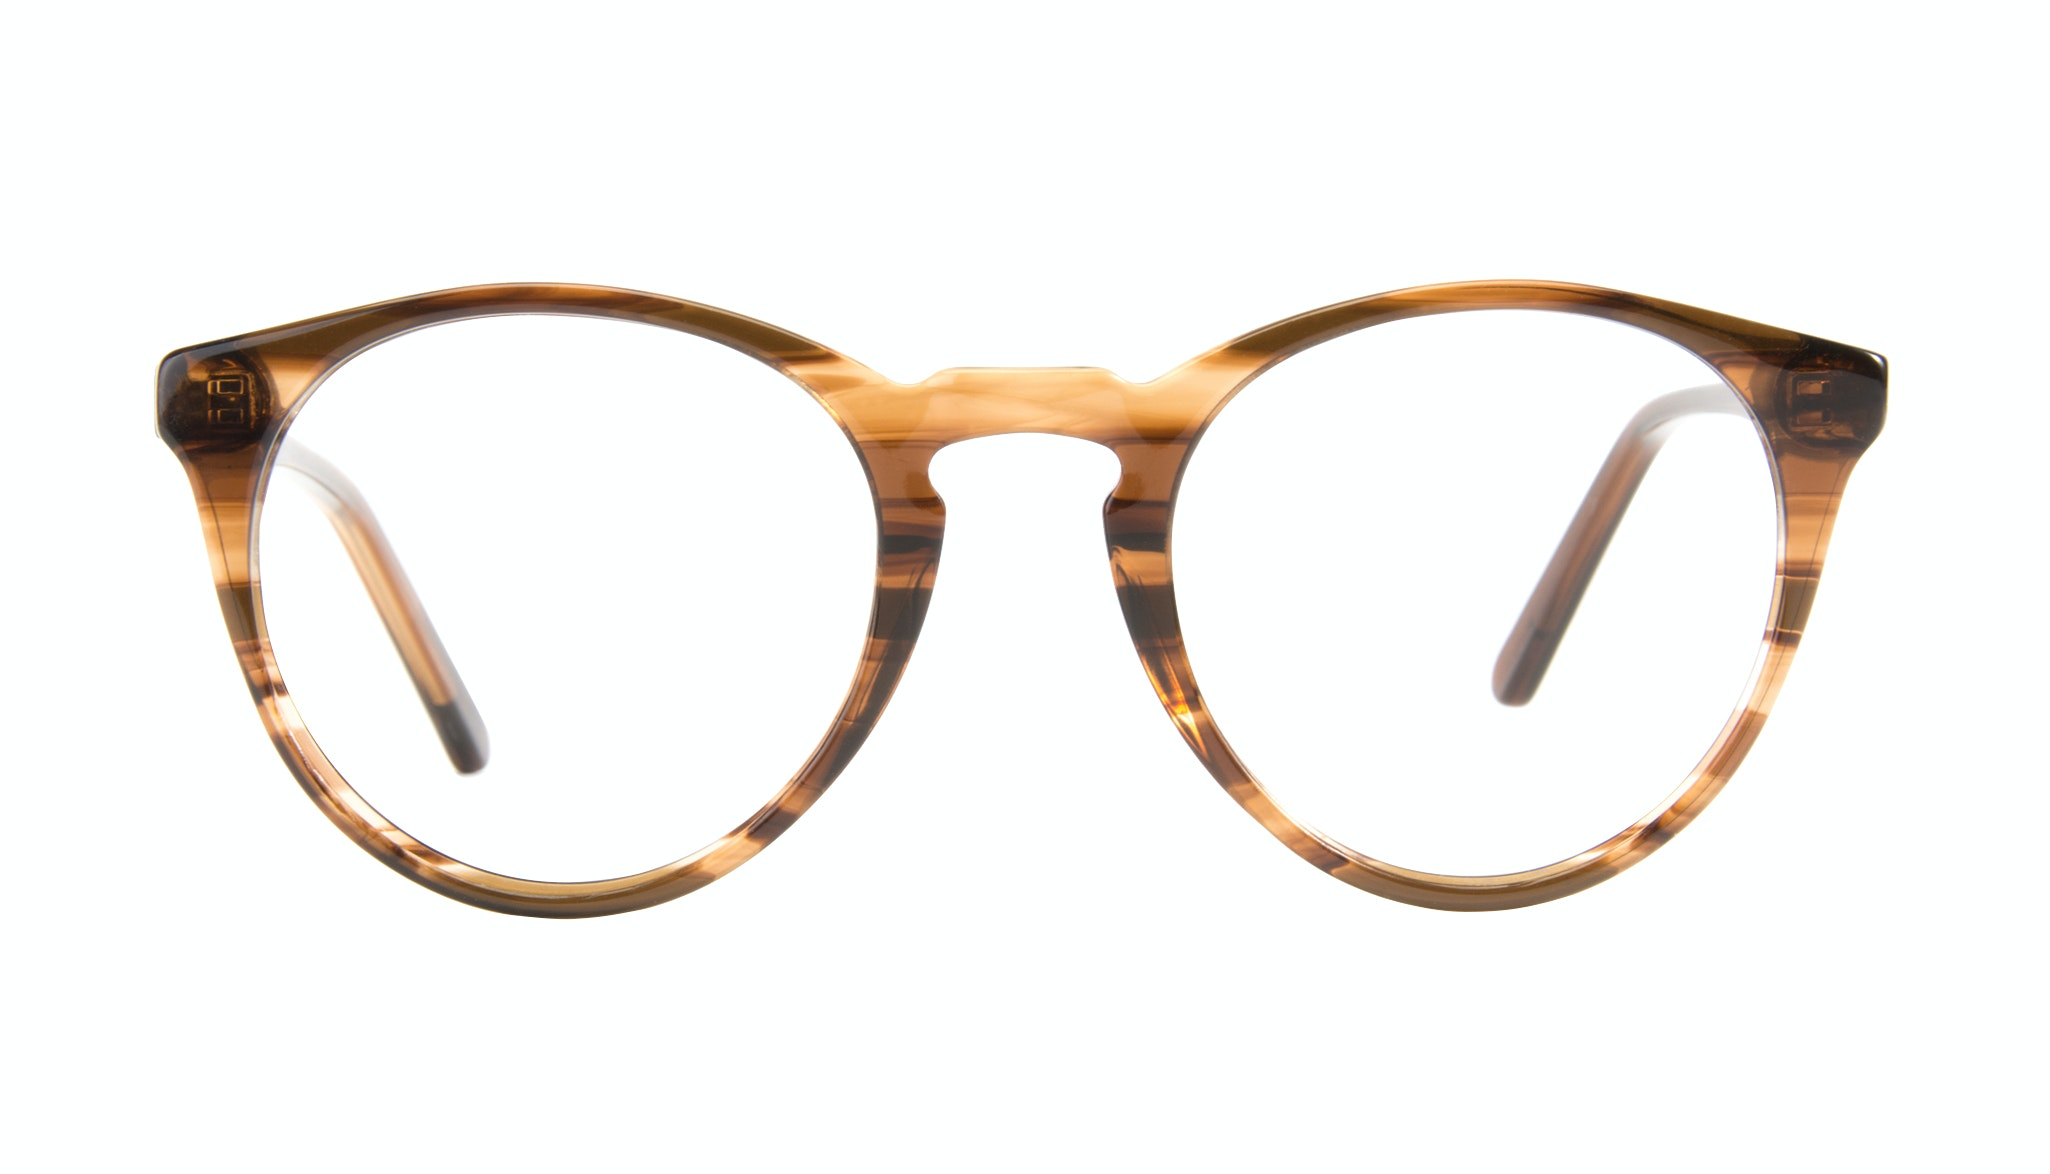 Affordable Fashion Glasses Round Eyeglasses Men Arch Wood